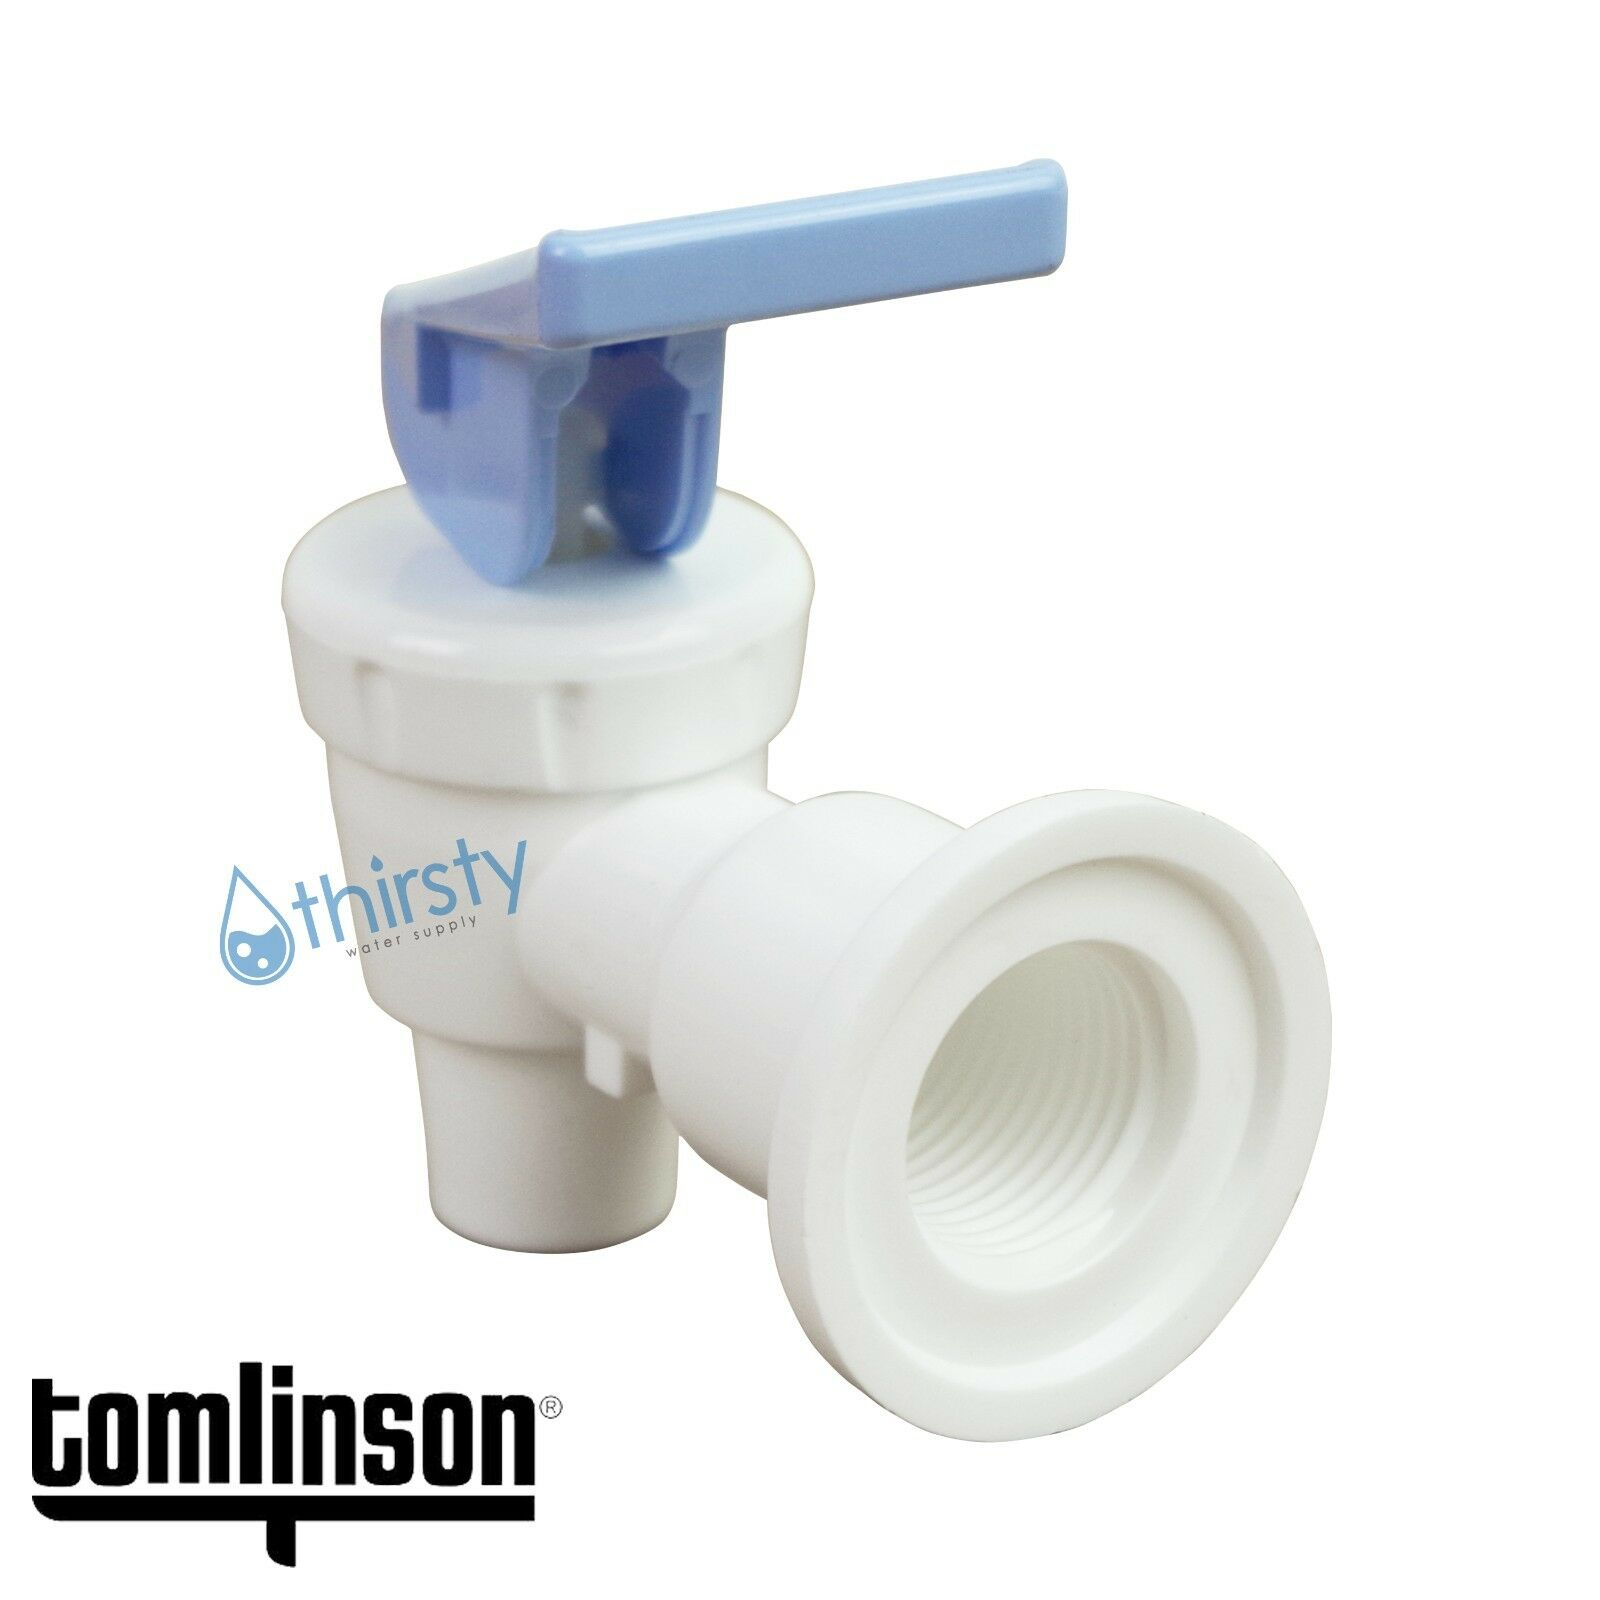 Water Cooler Spigot Faucet Tomlinson Dispenser Hot Cold Aqua Jug 3 ...